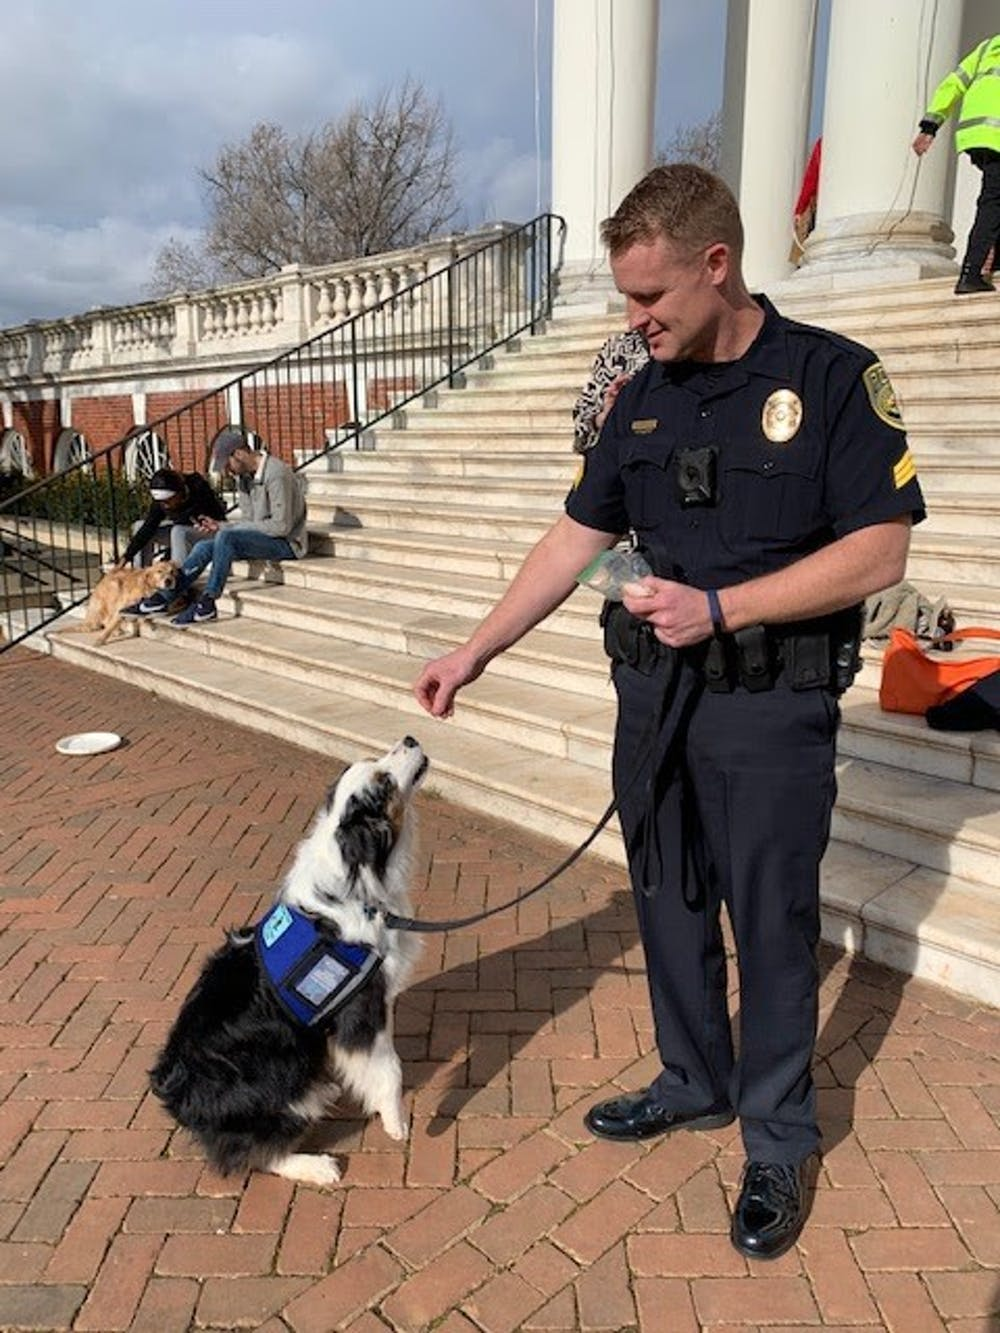 <p>Rexrode plans to bring Cooper when working with crime victims or students that have experienced serious trauma, so he can serve as a stress-reliever or relaxer for these students.</p>